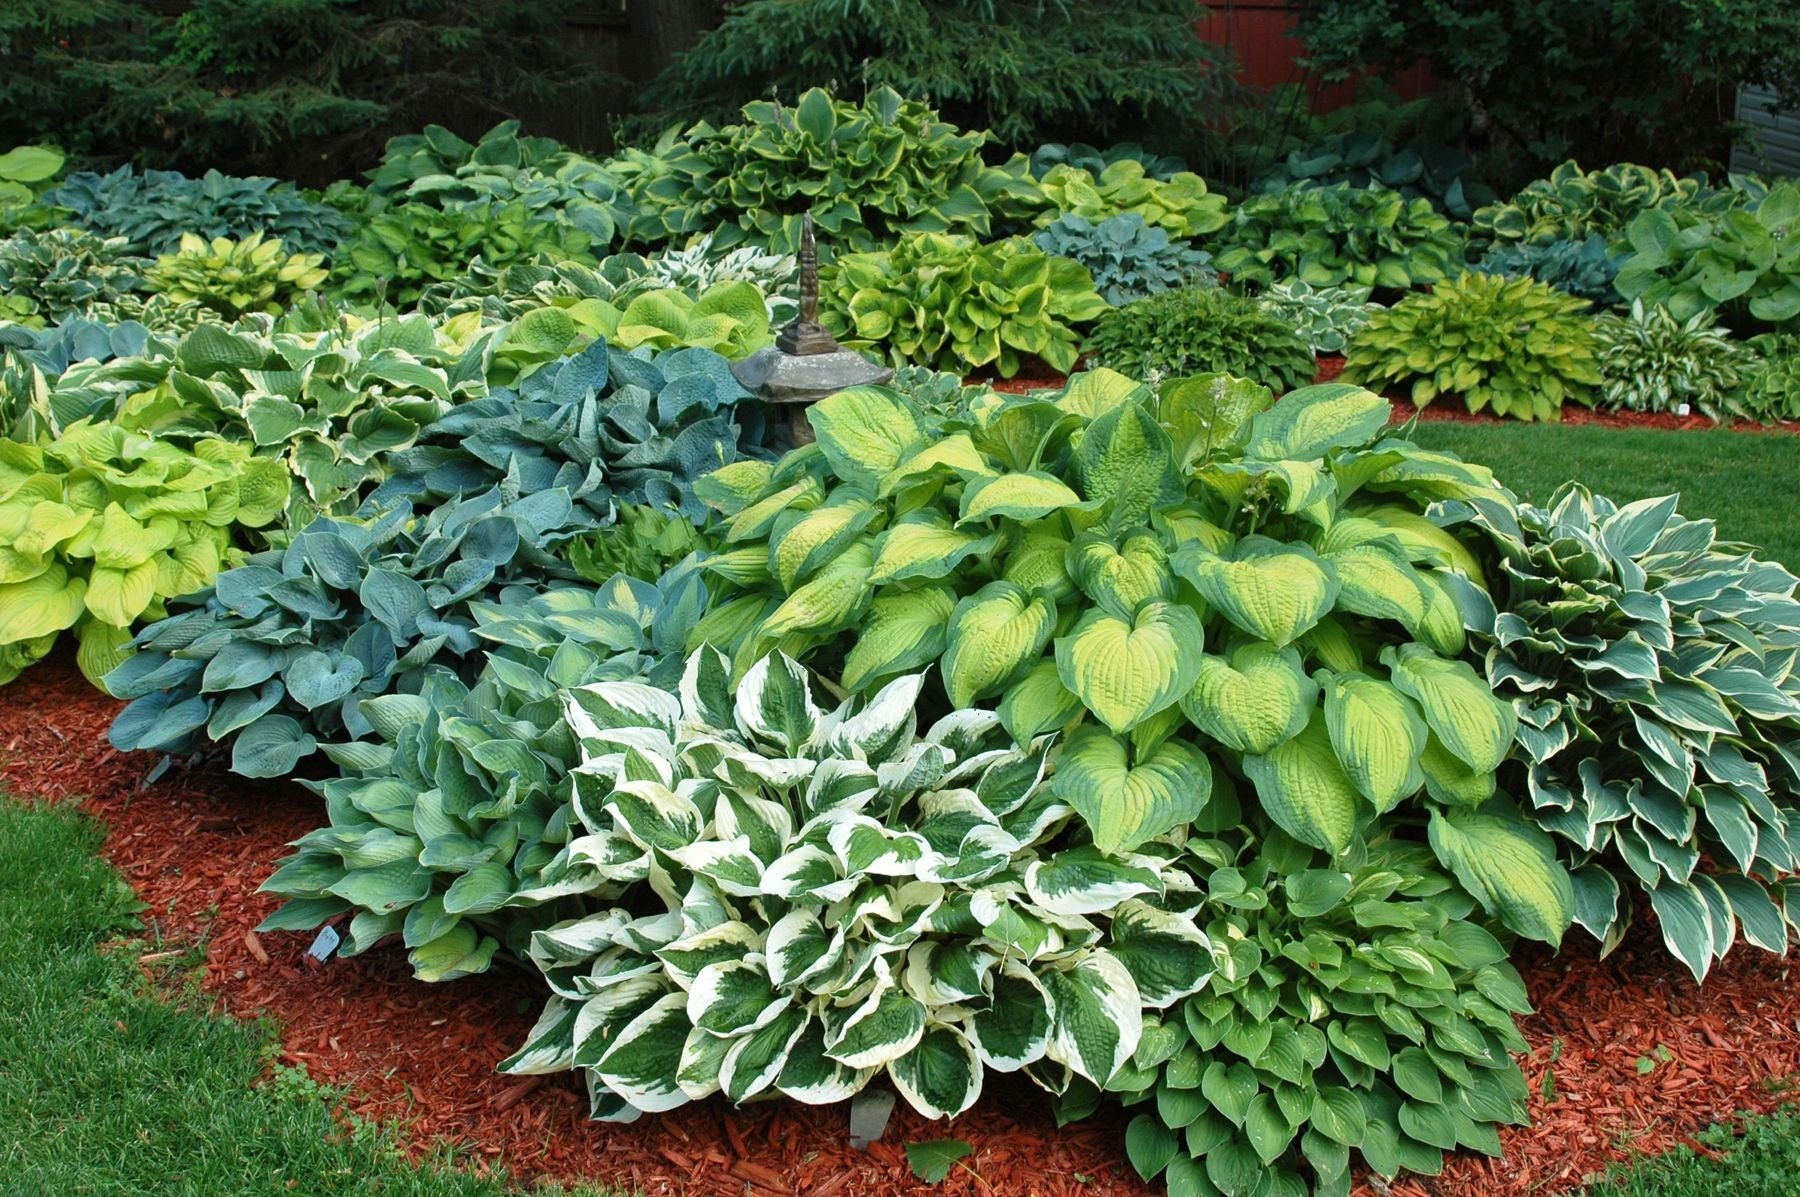 21 Ideas For Beautiful Garden Design And Yard Landscaping With Hostas